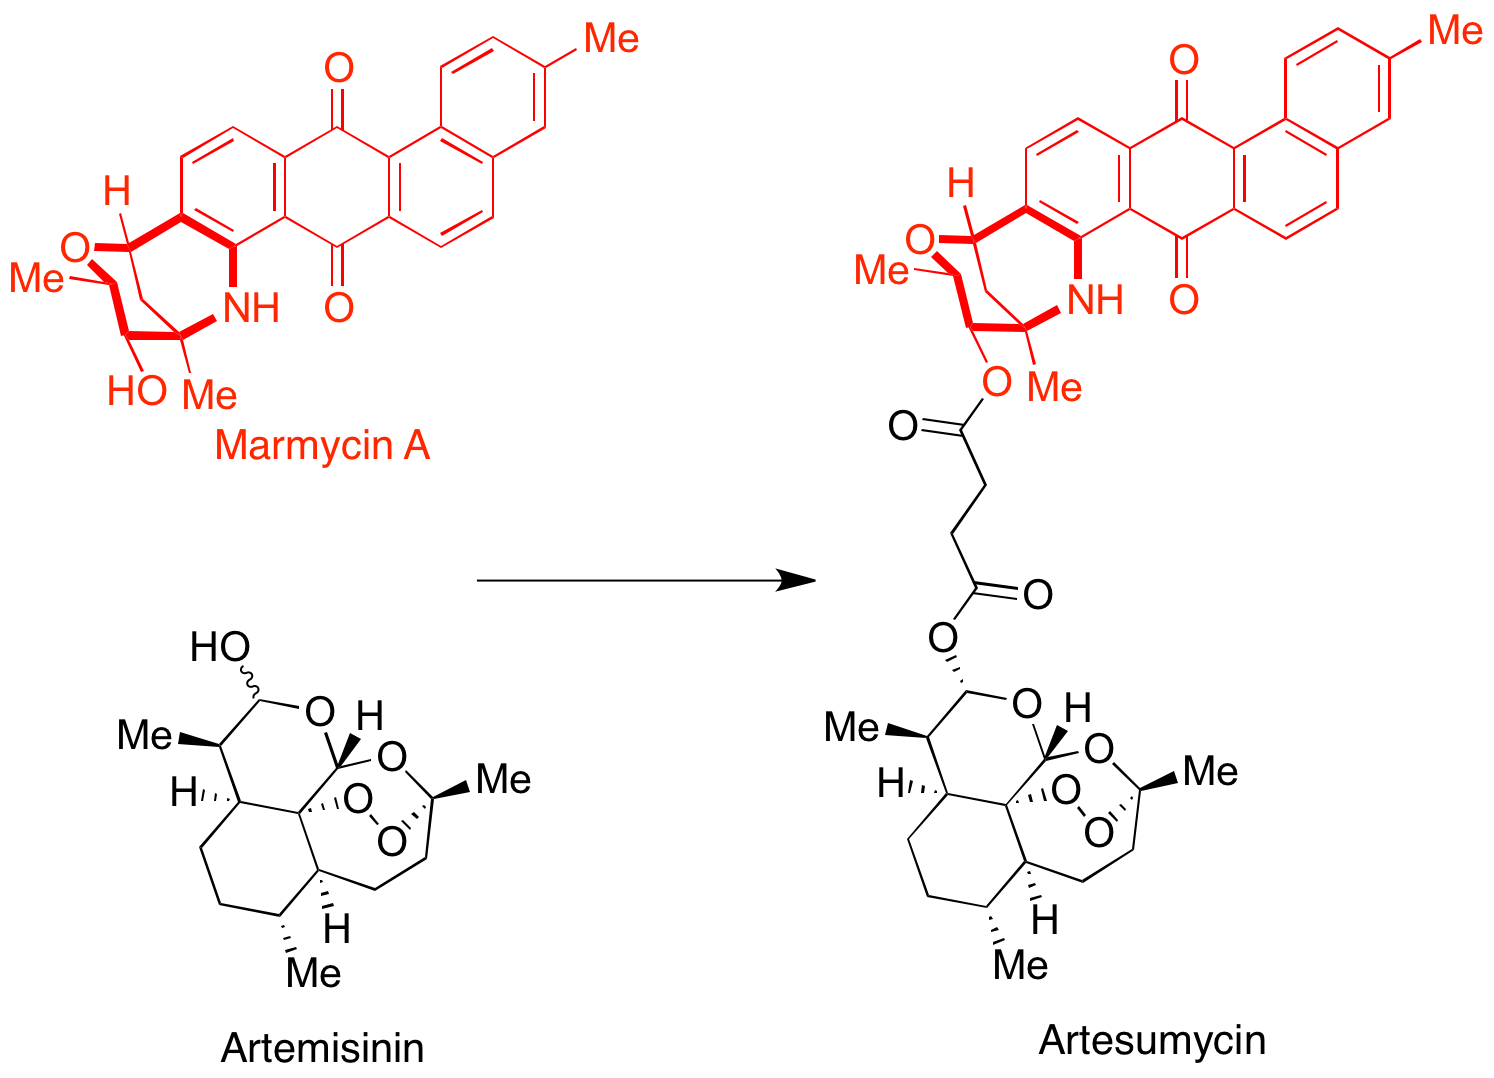 Artesumycin, a hybrid between Artemisinin and Marmycin that targets the lysosomal compartement.